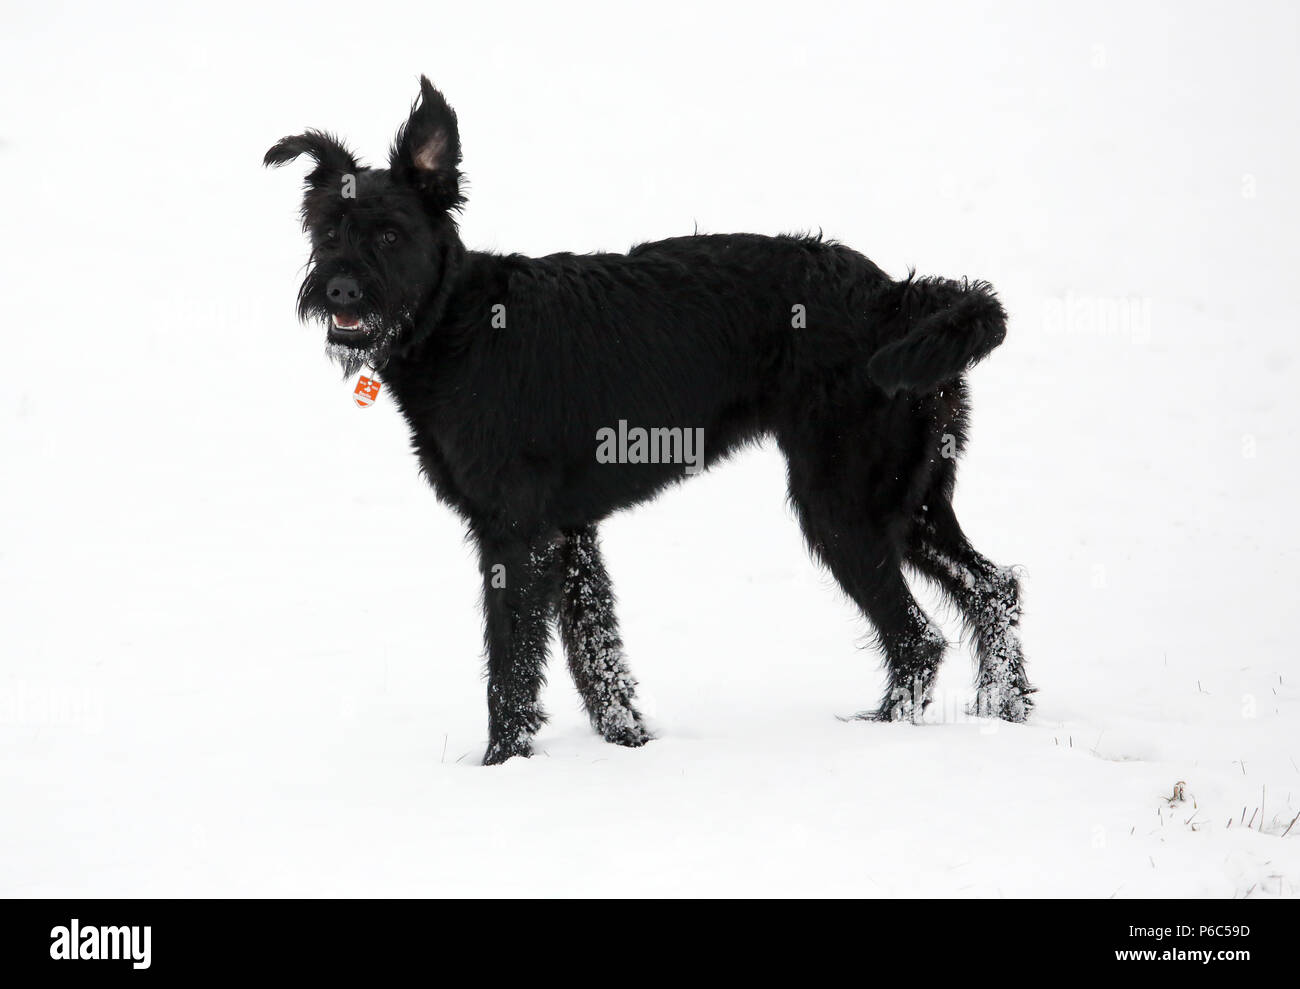 Werneuchen, Giant Schnauzer is standing in the snow - Stock Image